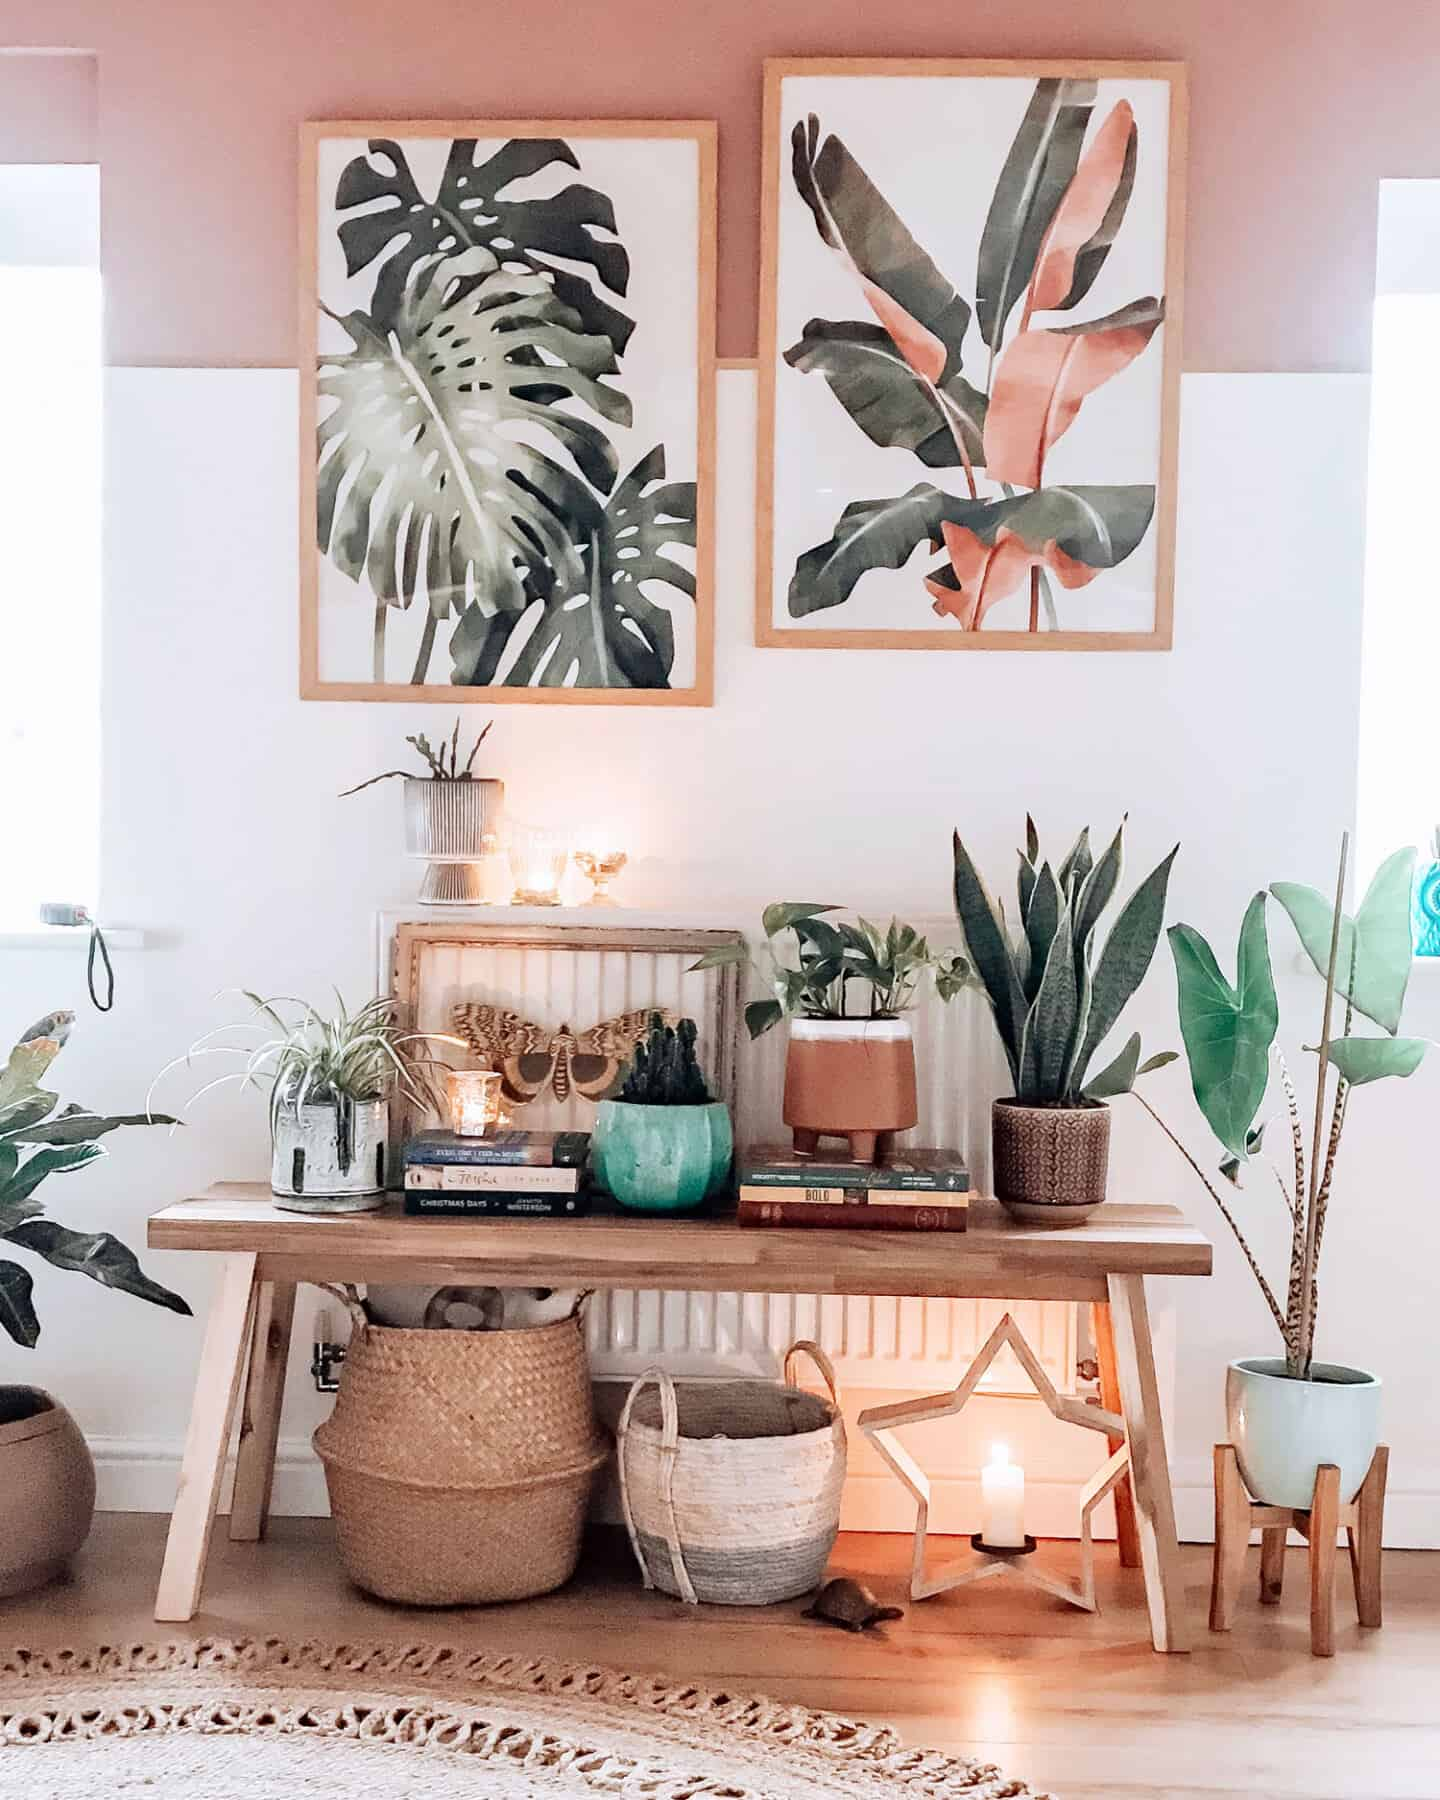 Botanical artwork inspired by Travel from Greenlili hung on a white and pink wall above a wooden bench covered in plant pots